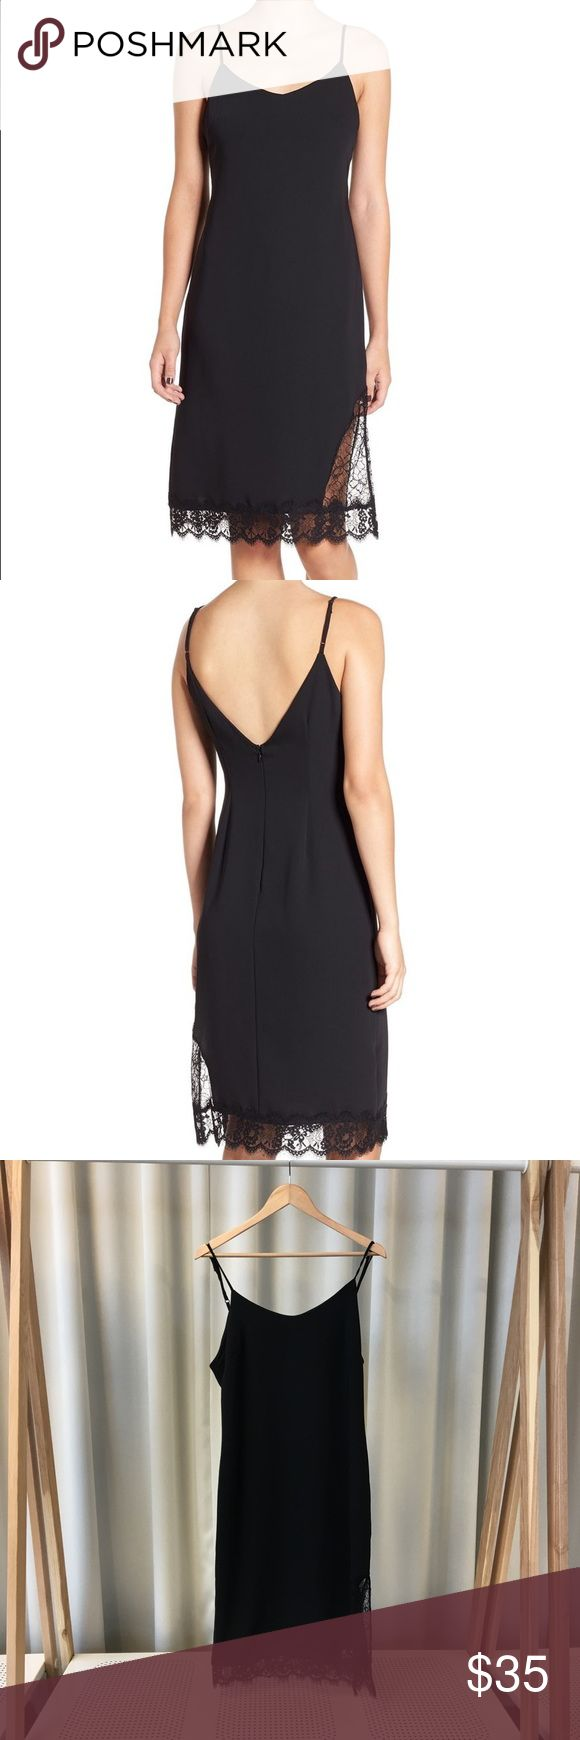 Leith Lace Hem Slip Dress Lightweight back slip dress with split hemline and delicate lace hem. Features a v neckline, adjustable straps, back zip closure, and is fully lined. 100% polyester. Label is Leith, from Nordstrom. Stock photo to show fit. Please carefully review each photo before purchase as they are the best descriptors of the item. My price is firm. No trades. First come, first served. Thank you! :) Nordstrom Dresses Midi